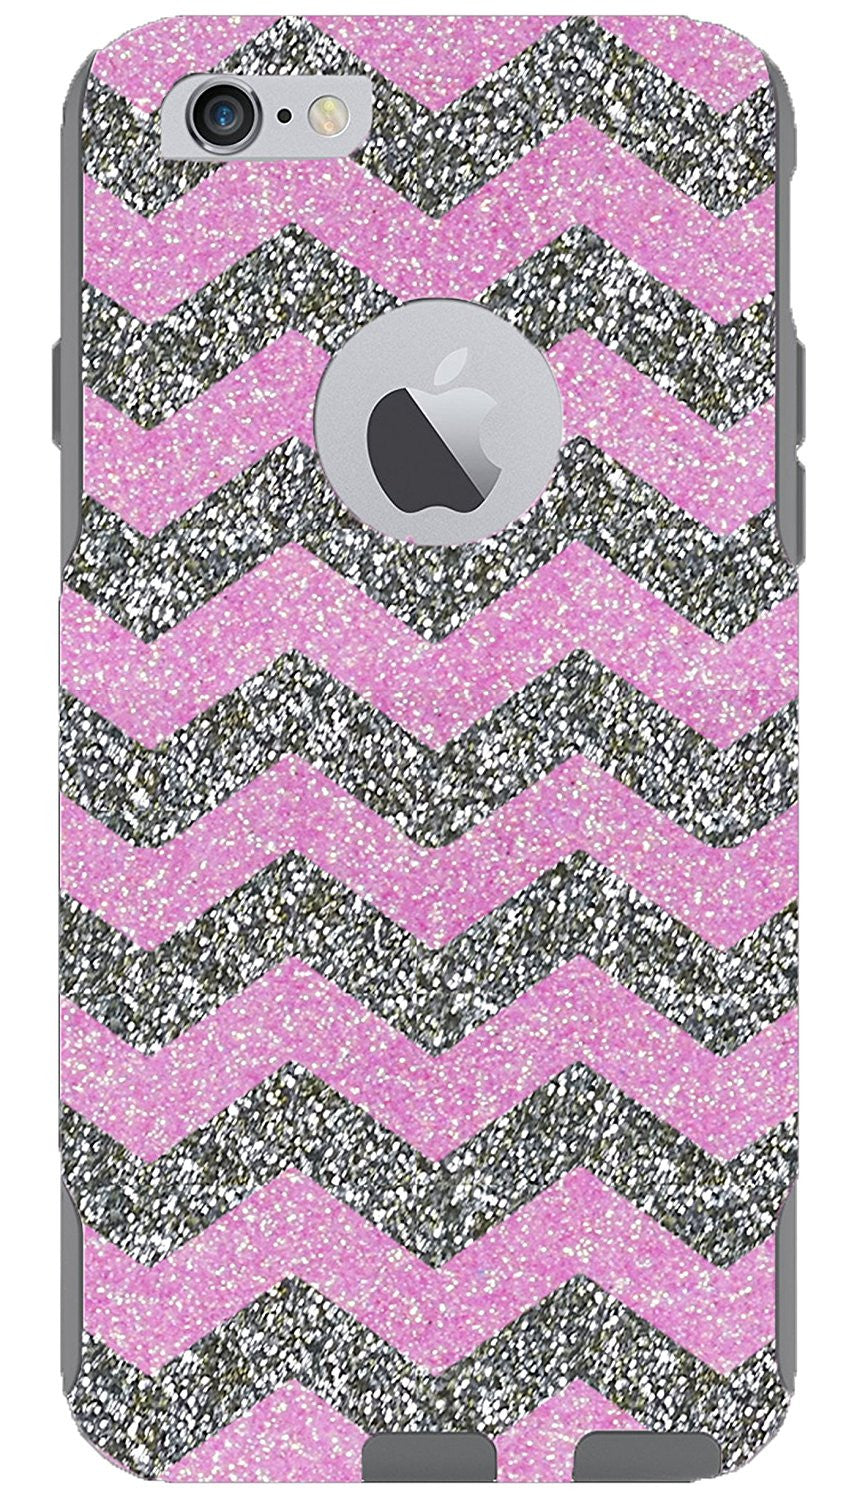 big sale b0b9c 80f76 OtterBox iPhone 6 Plus Case - OtterBox Commuter Series Custom Glitter Case  for iPhone 6 Plus, Retail Packaging - White Gold Small Chevron Light ...